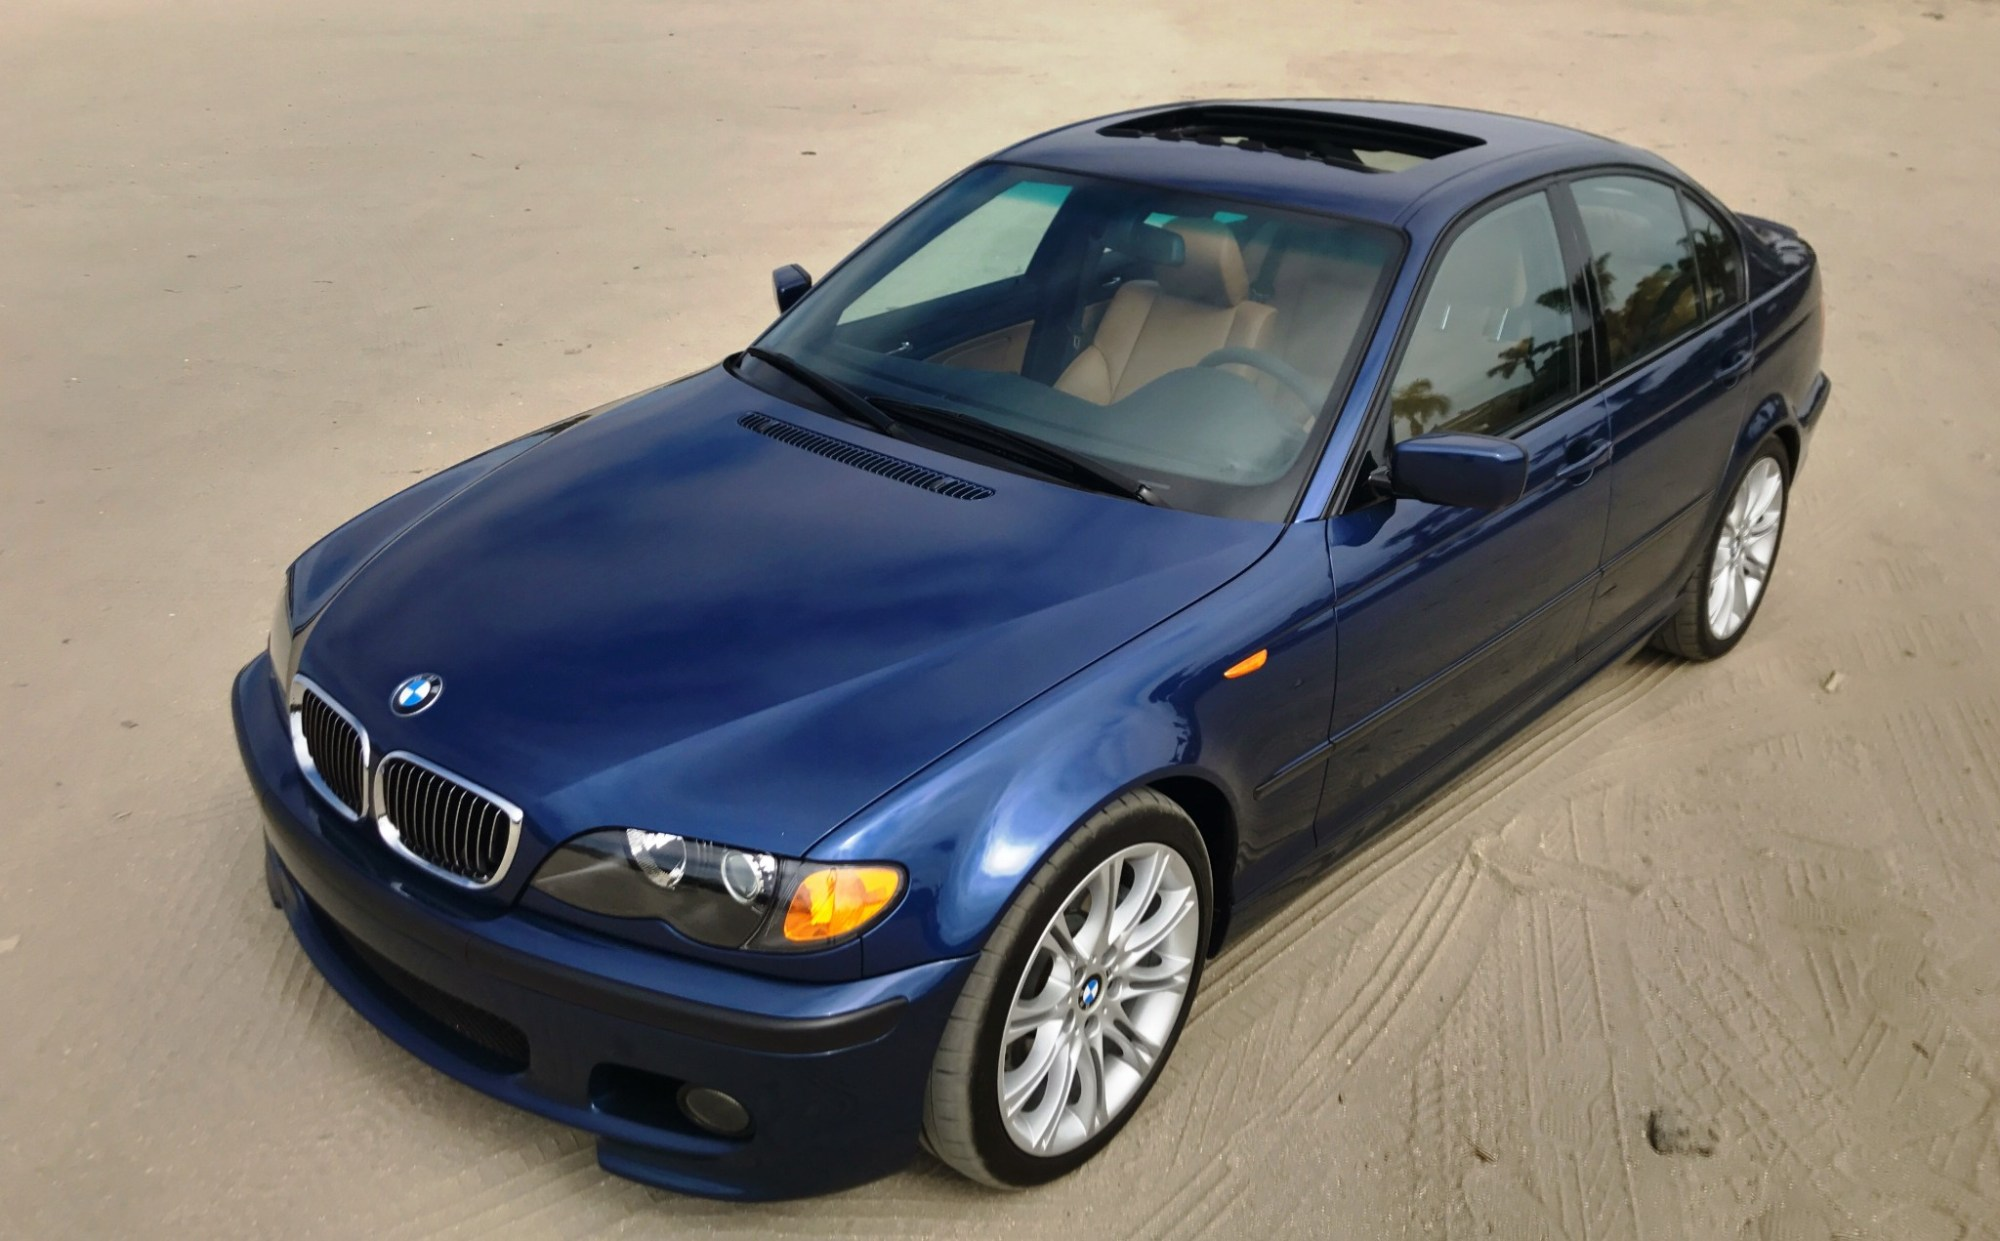 hight resolution of 33k mile 2003 bmw 330i zhp 6 speed for sale on bat auctions sold for 26 000 on june 22 2018 lot 10 448 bring a trailer